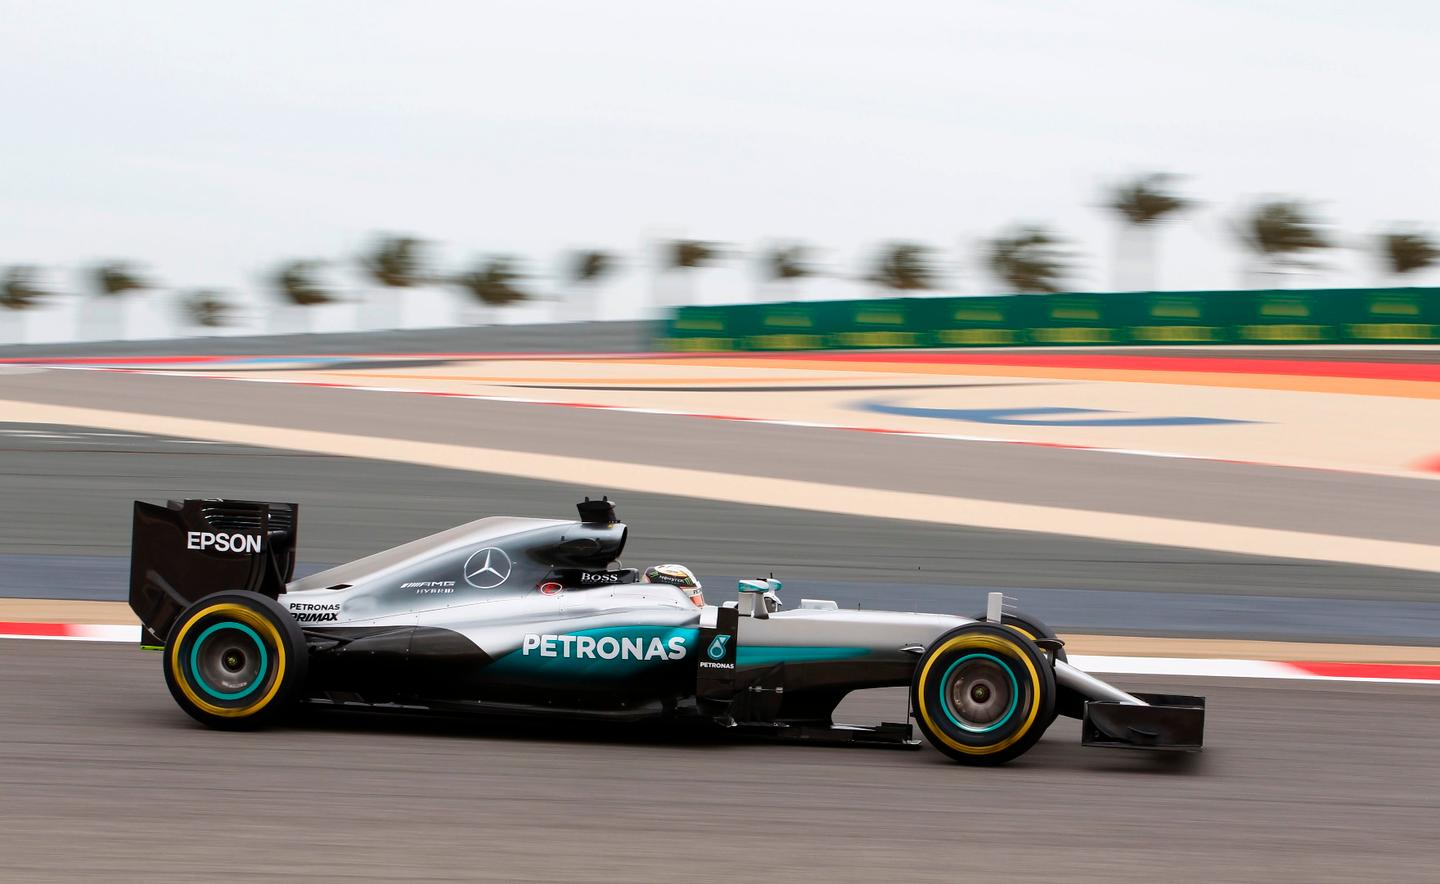 Lewis Hamilton beat Fernando Alonso's lap record in Bahrain with his Mercedes W07